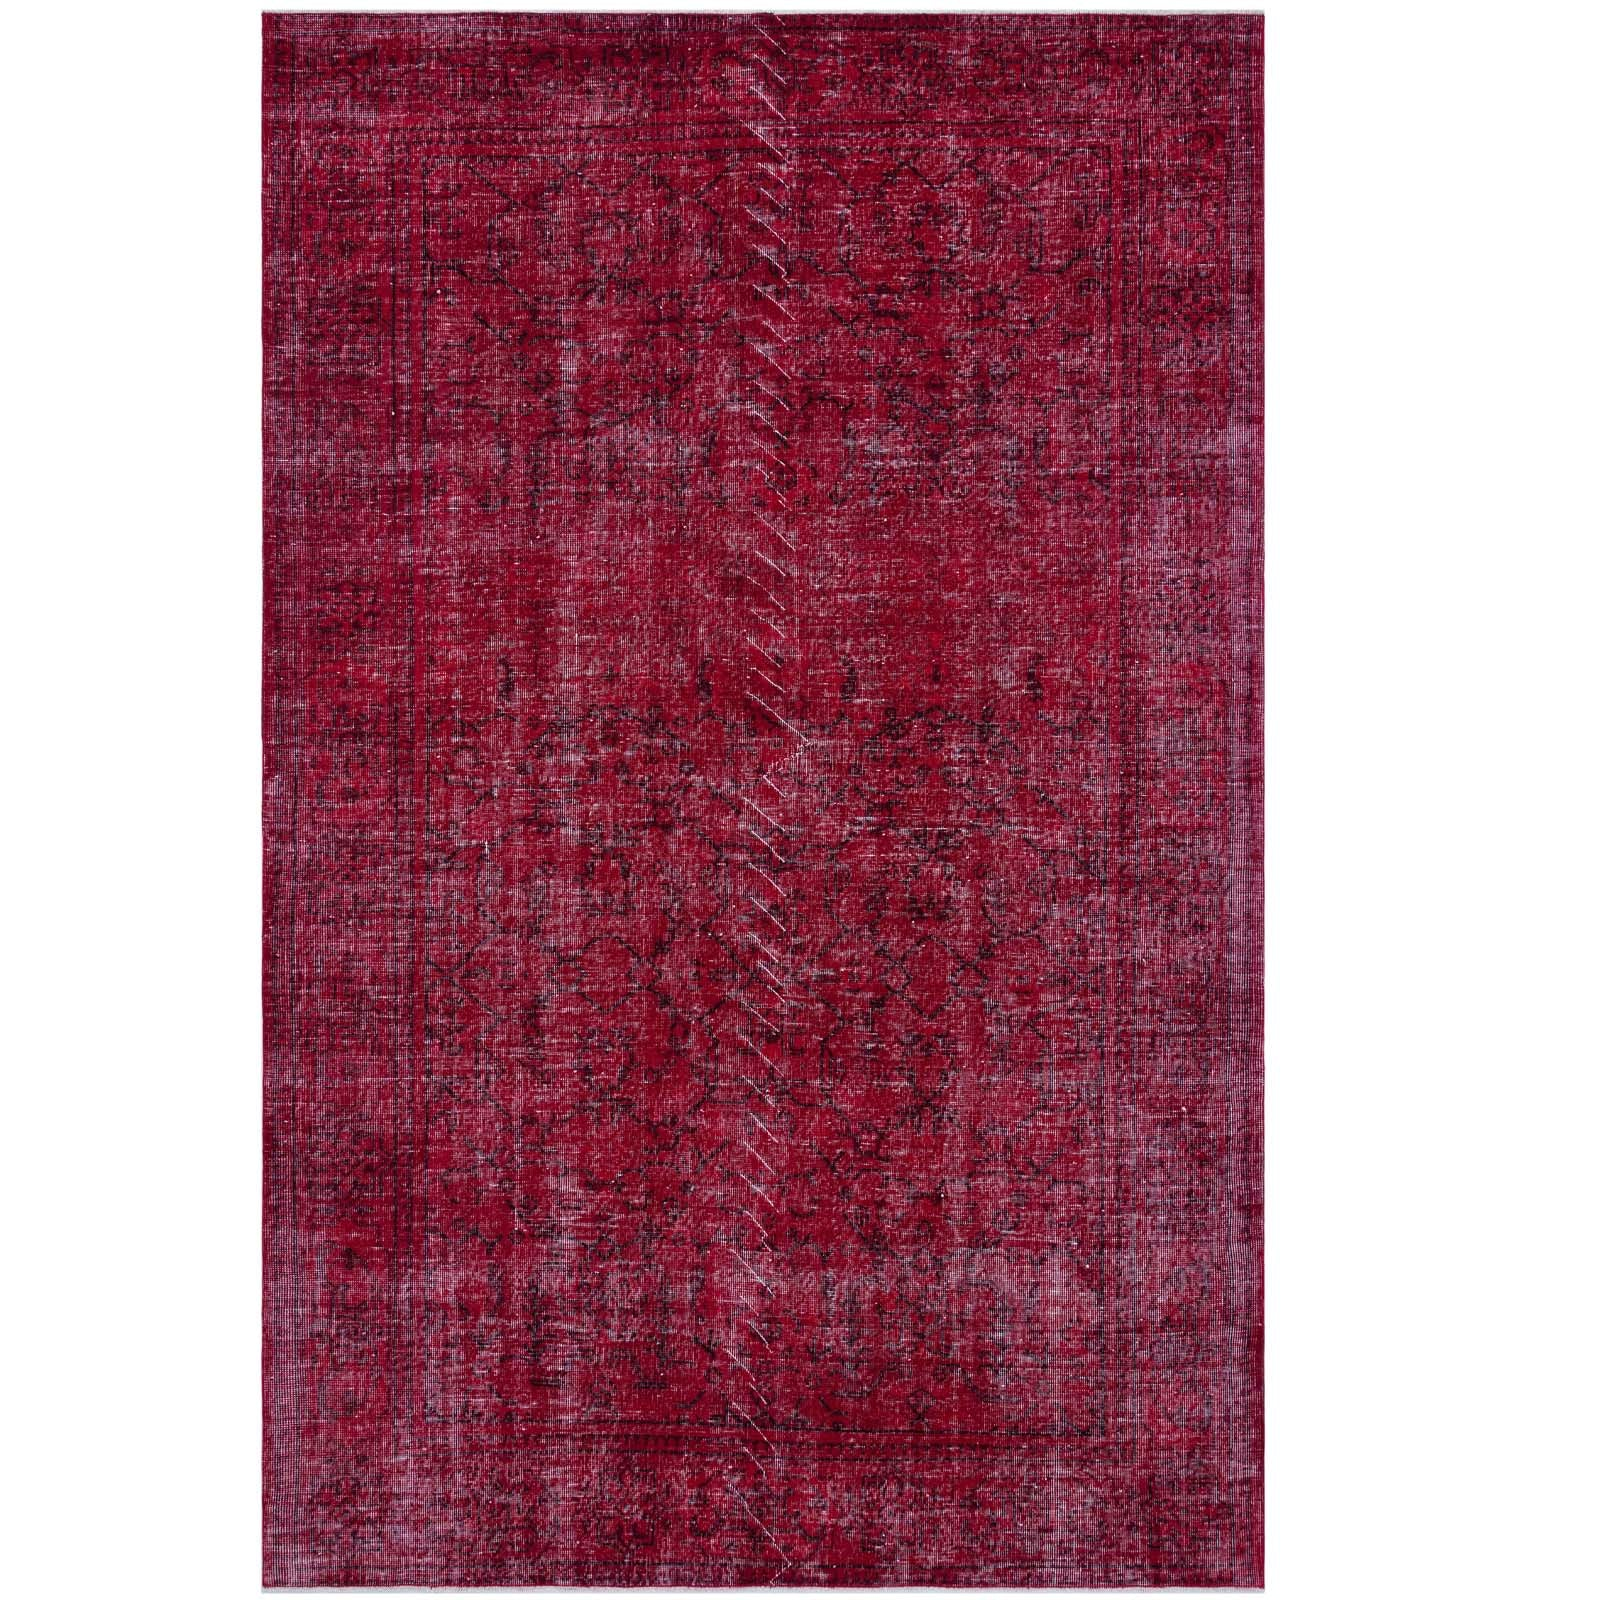 Hali 192X288 CM Bursa Handmade over dyed rug 1417